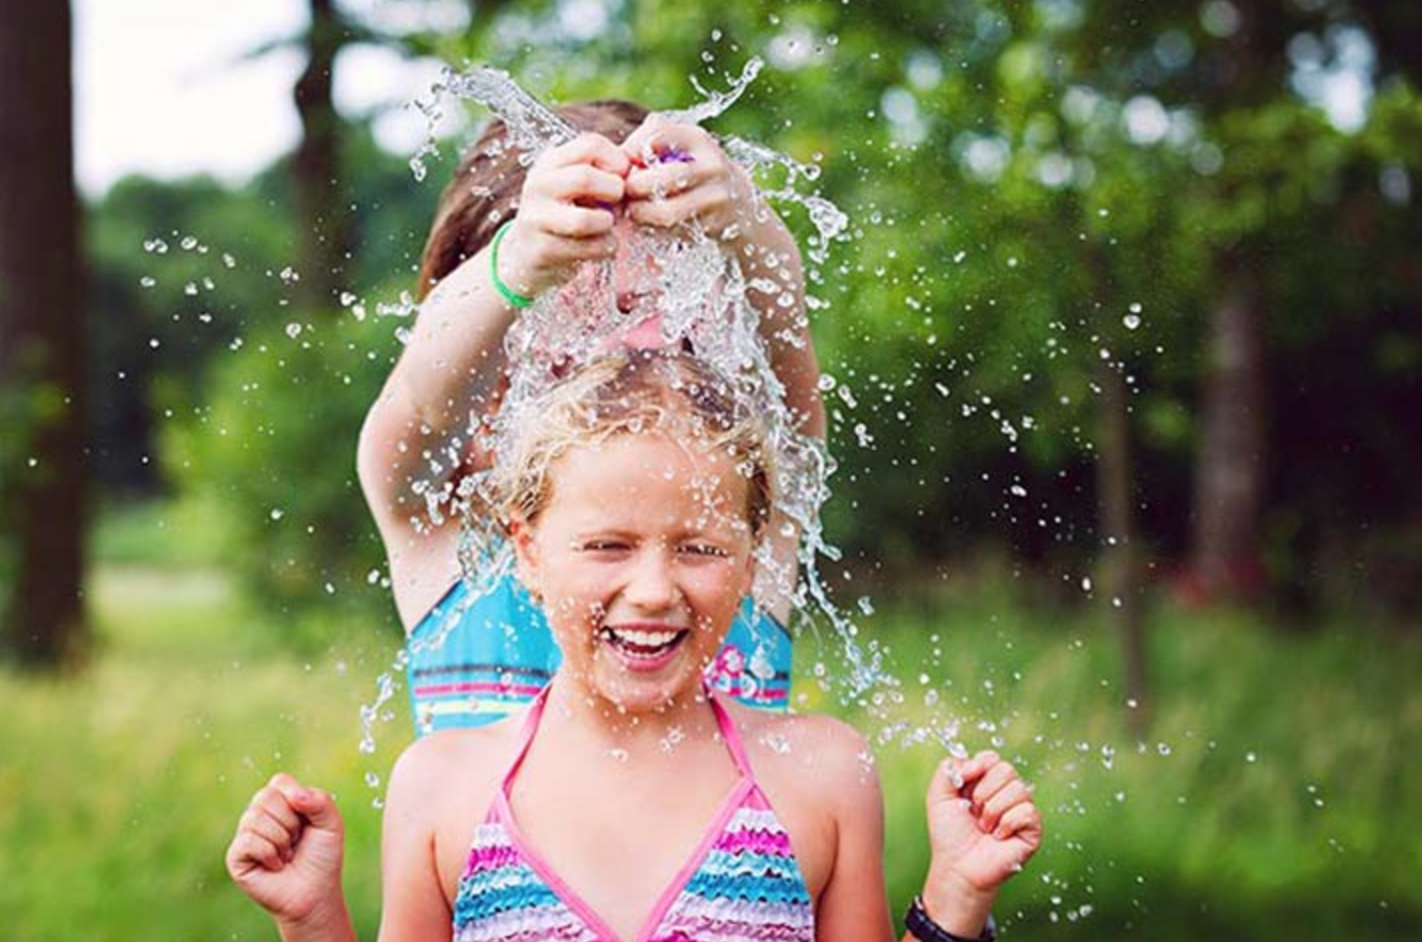 The Ultimate Summer Bucket List : Over 50 free and fun activities for families to do this summer!